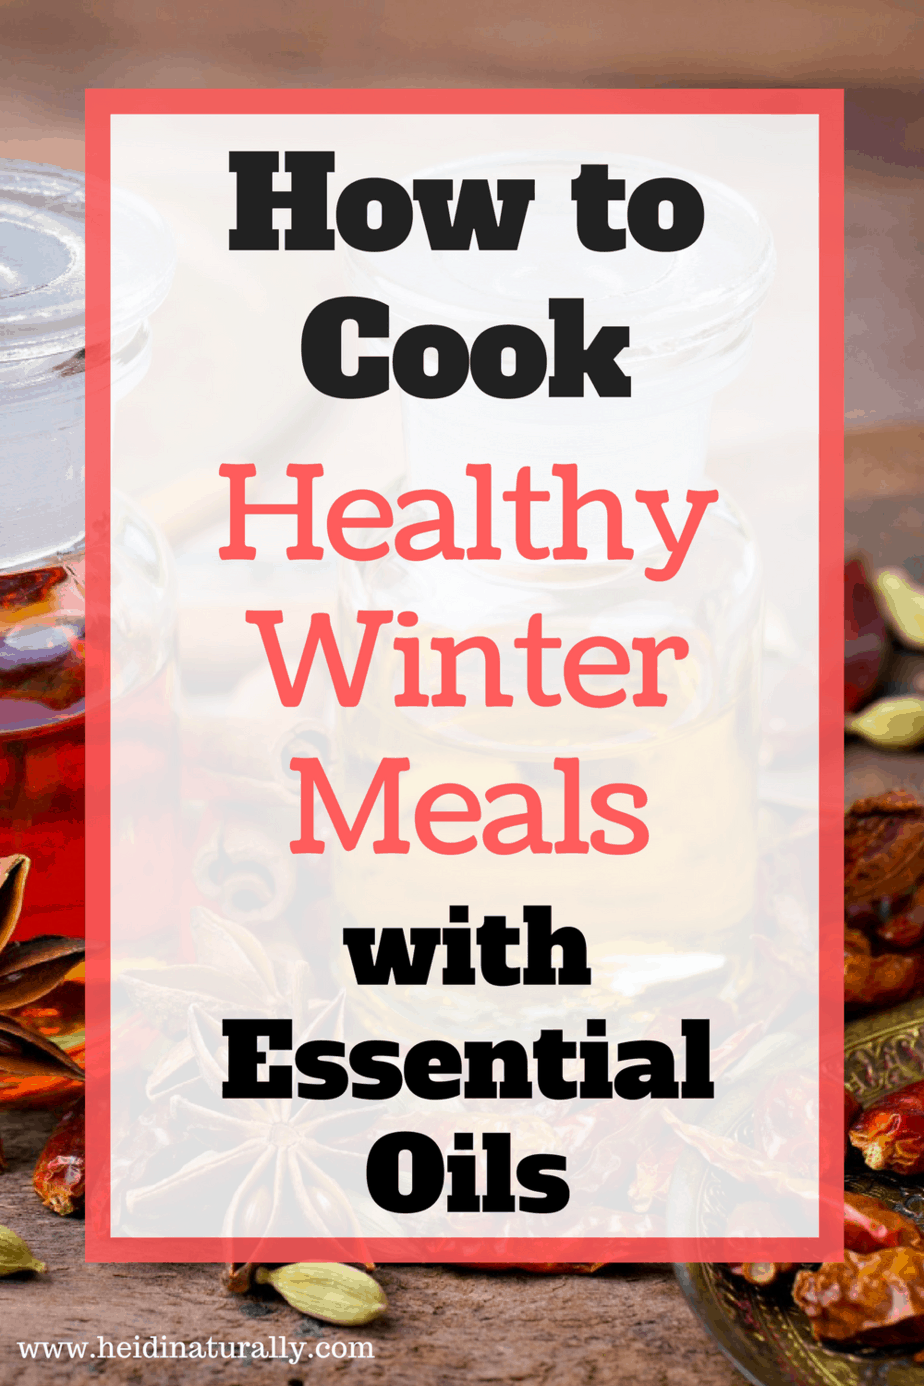 Find out how to cook yummy comfort foods using essential oils to add flavor. Learn which oils to use, the best recipes, and how to flavor dishes correctly.